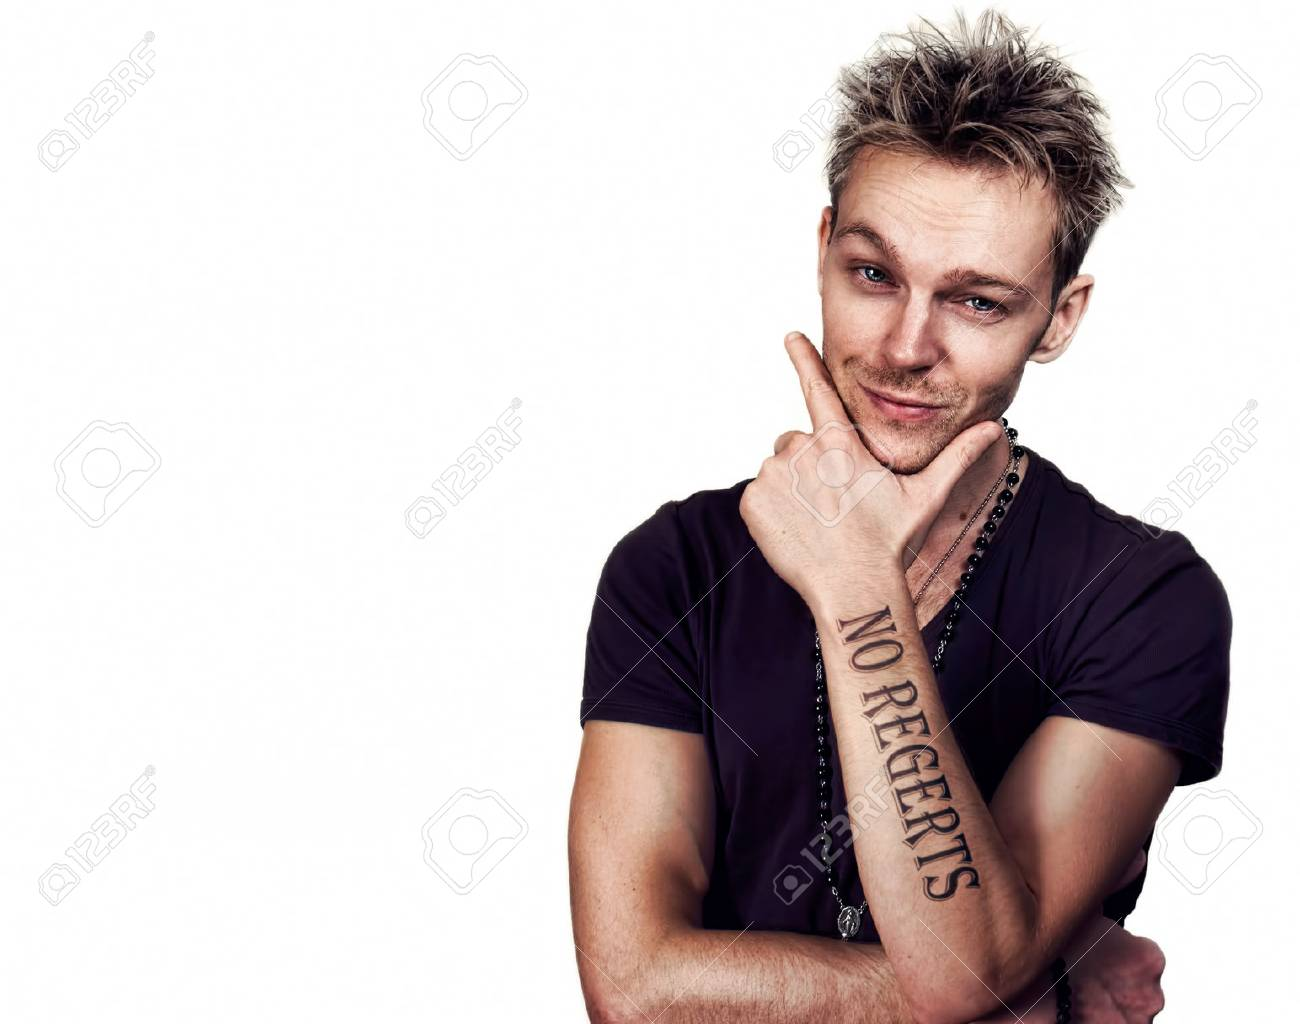 Man With No Regerts Tattoo Stock Photo Picture And Royalty Free Image Image 81285815